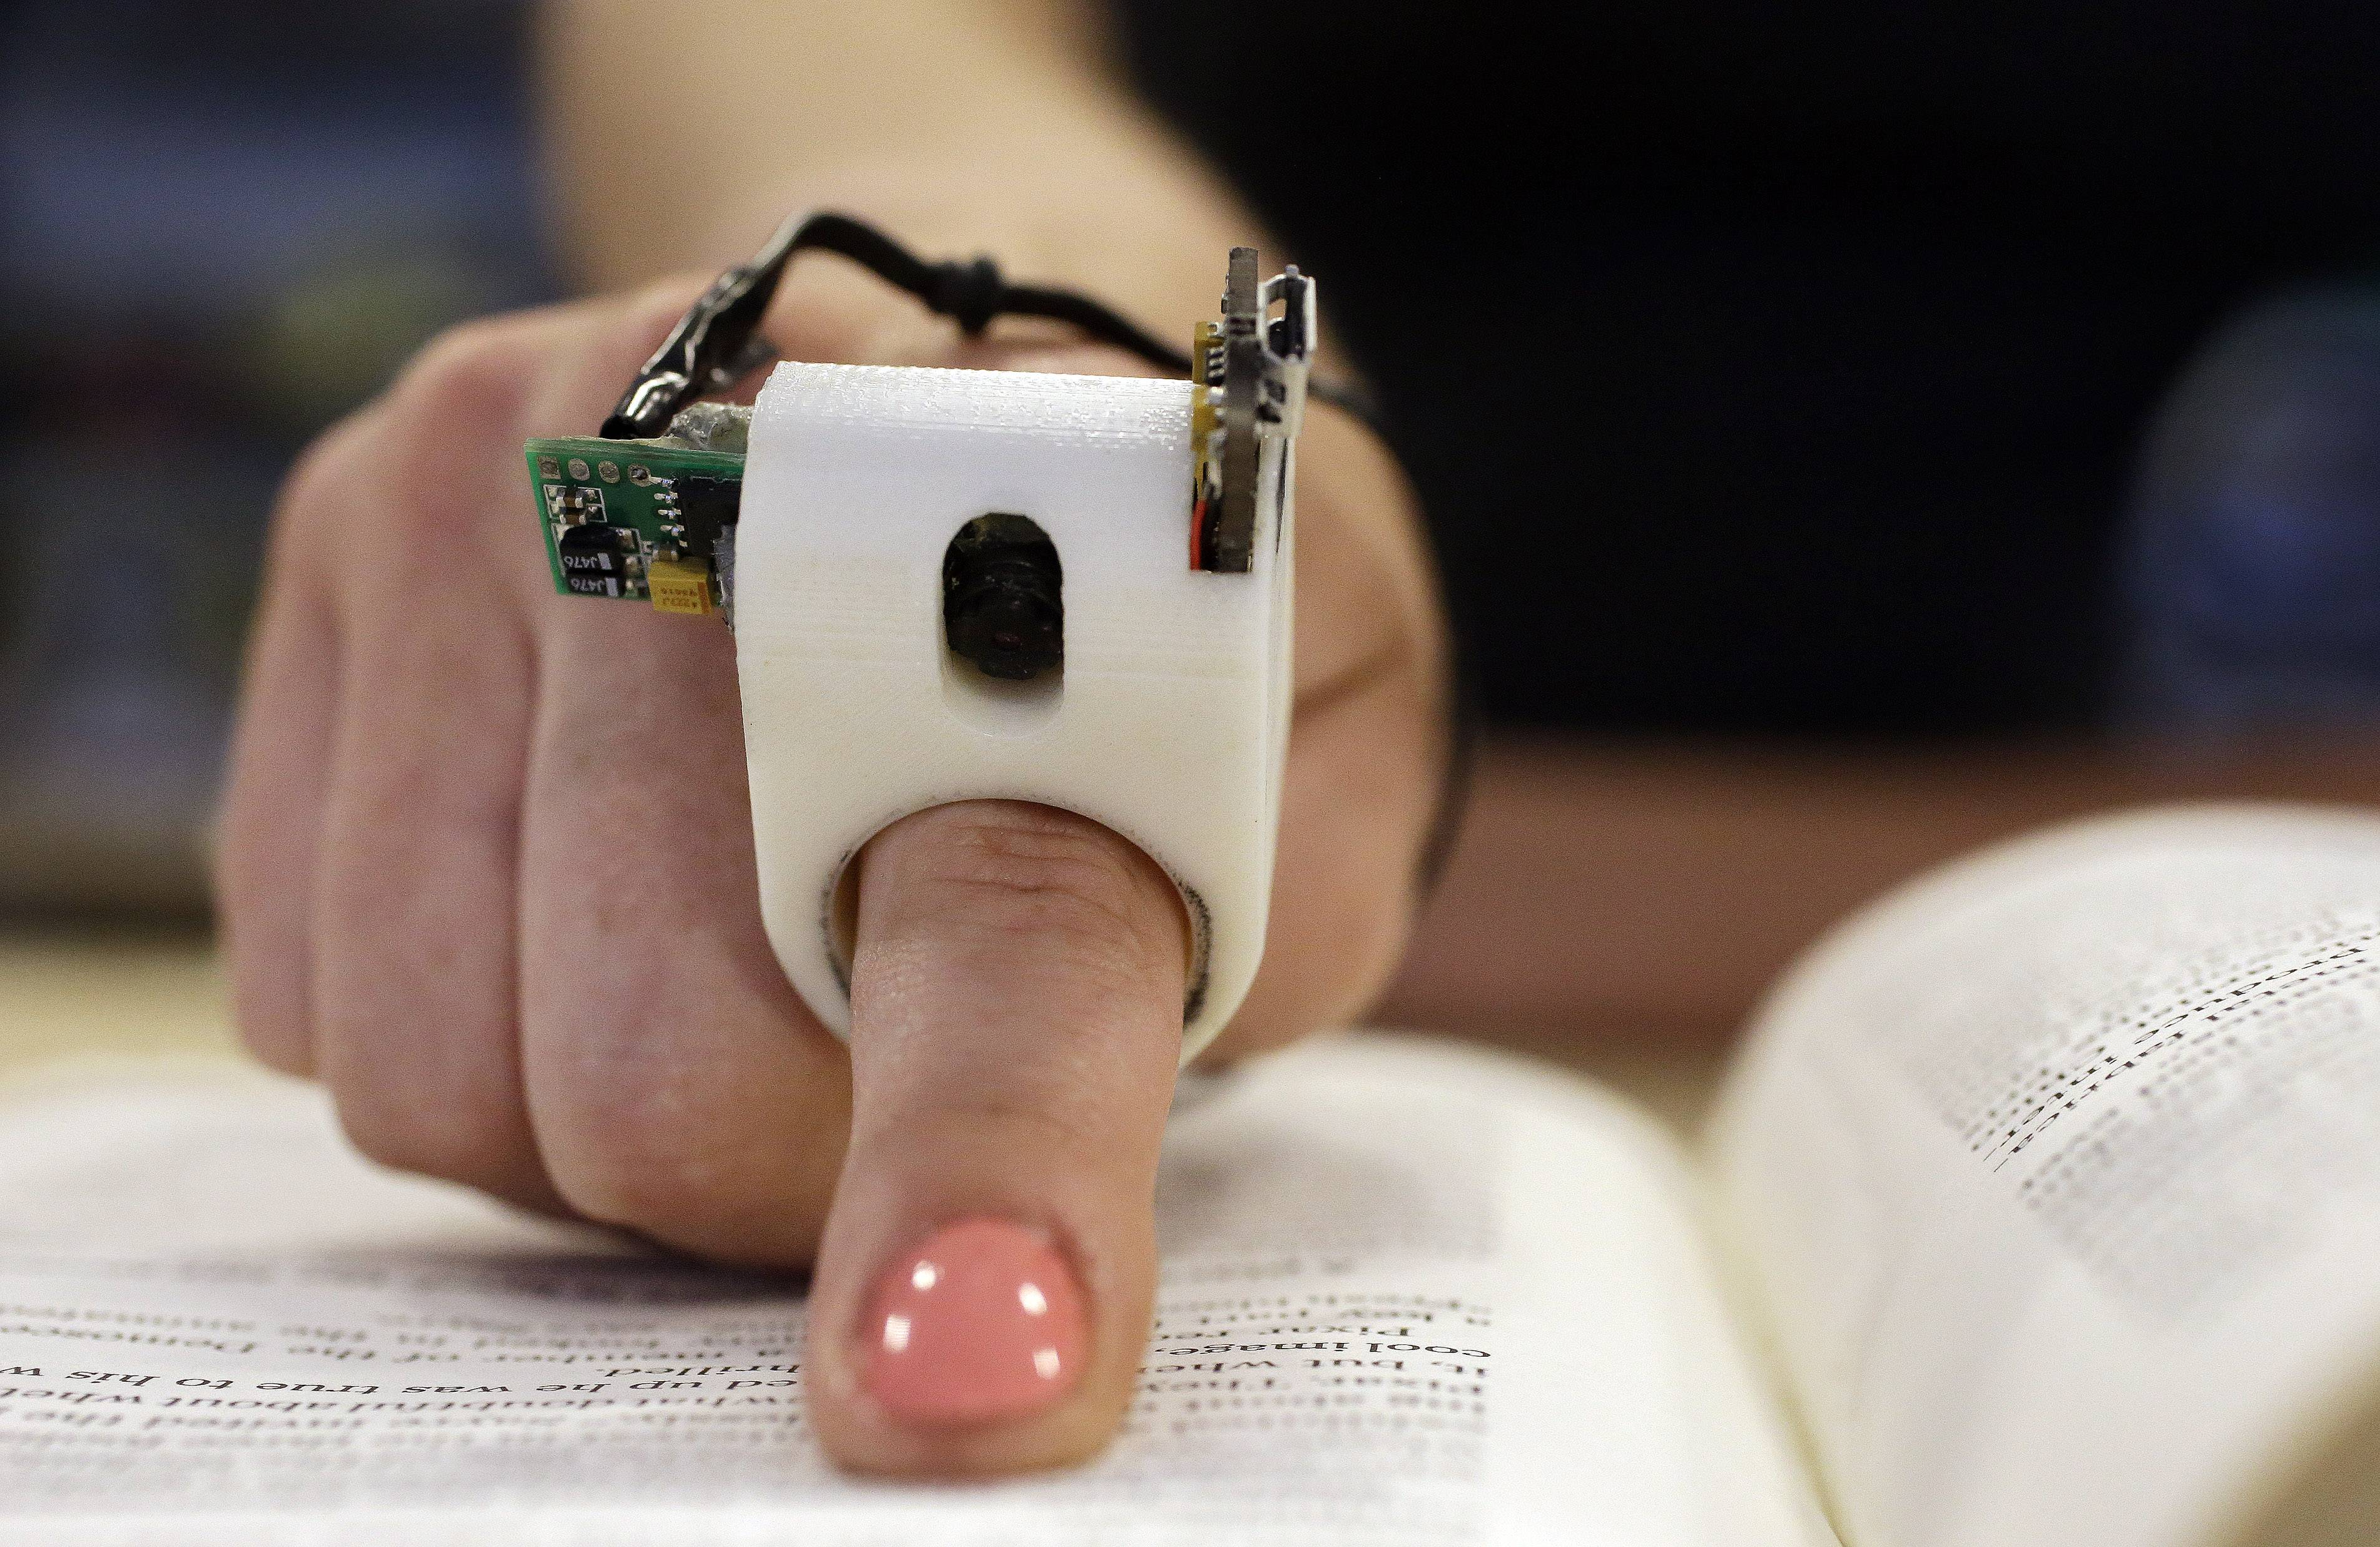 A model wears a FingerReader ring at the Massachusetts Institute of Technology's Media Lab in Cambridge, Mass. Researchers designed and developed the instrument, which enables people with visual disabilities to read text printed on paper or electronic devices.